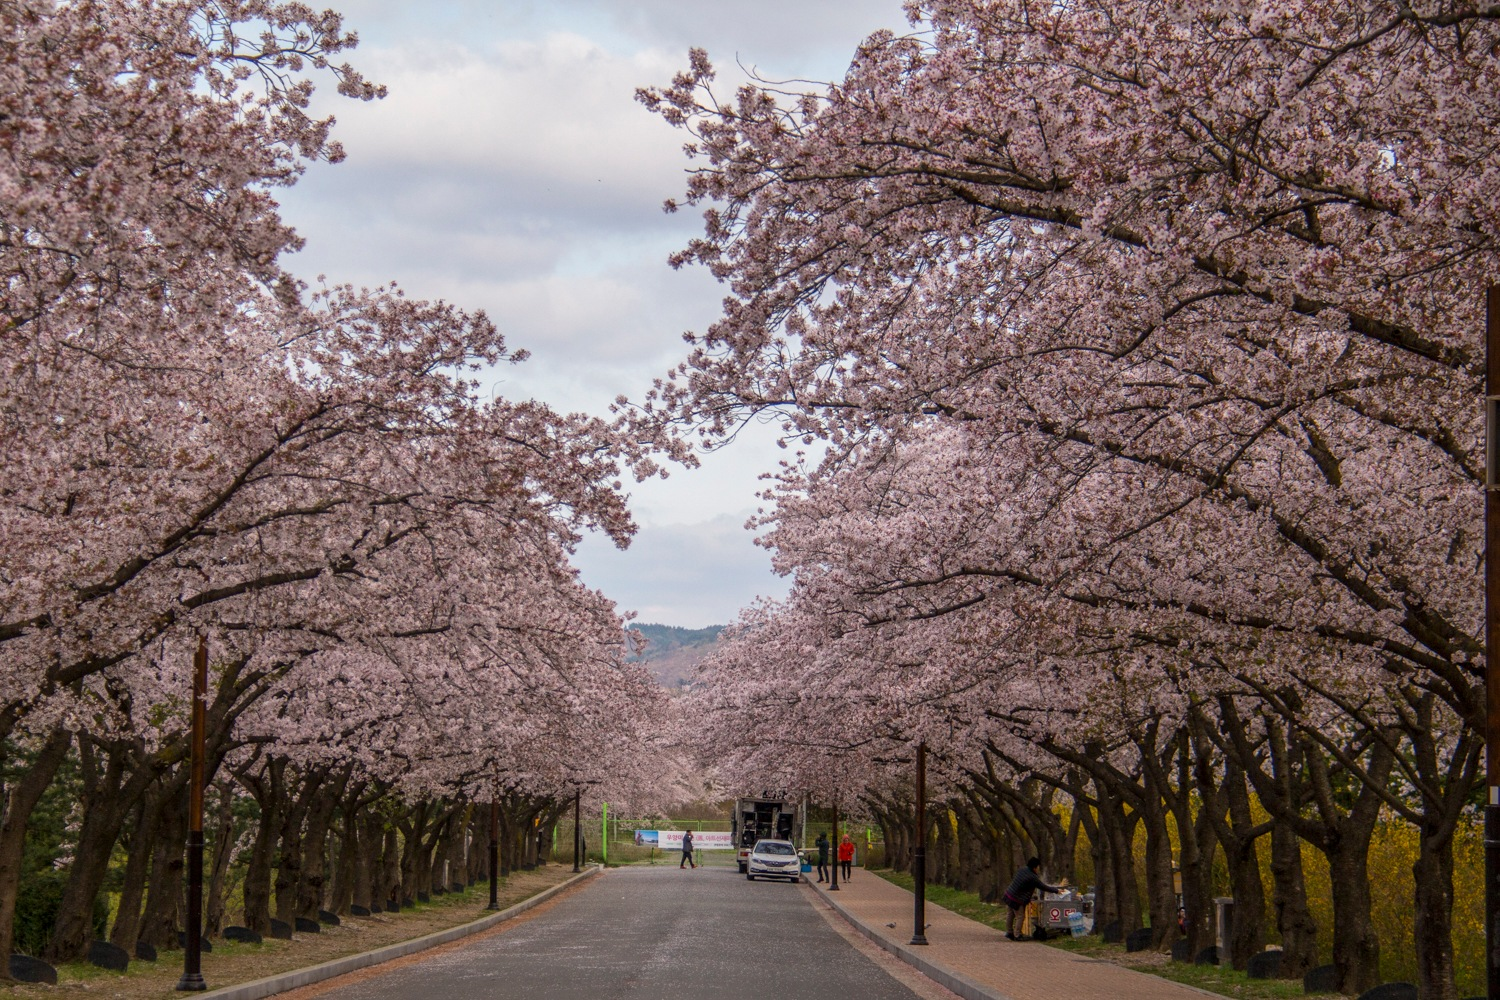 Cherry blossom by Experienced Traveller